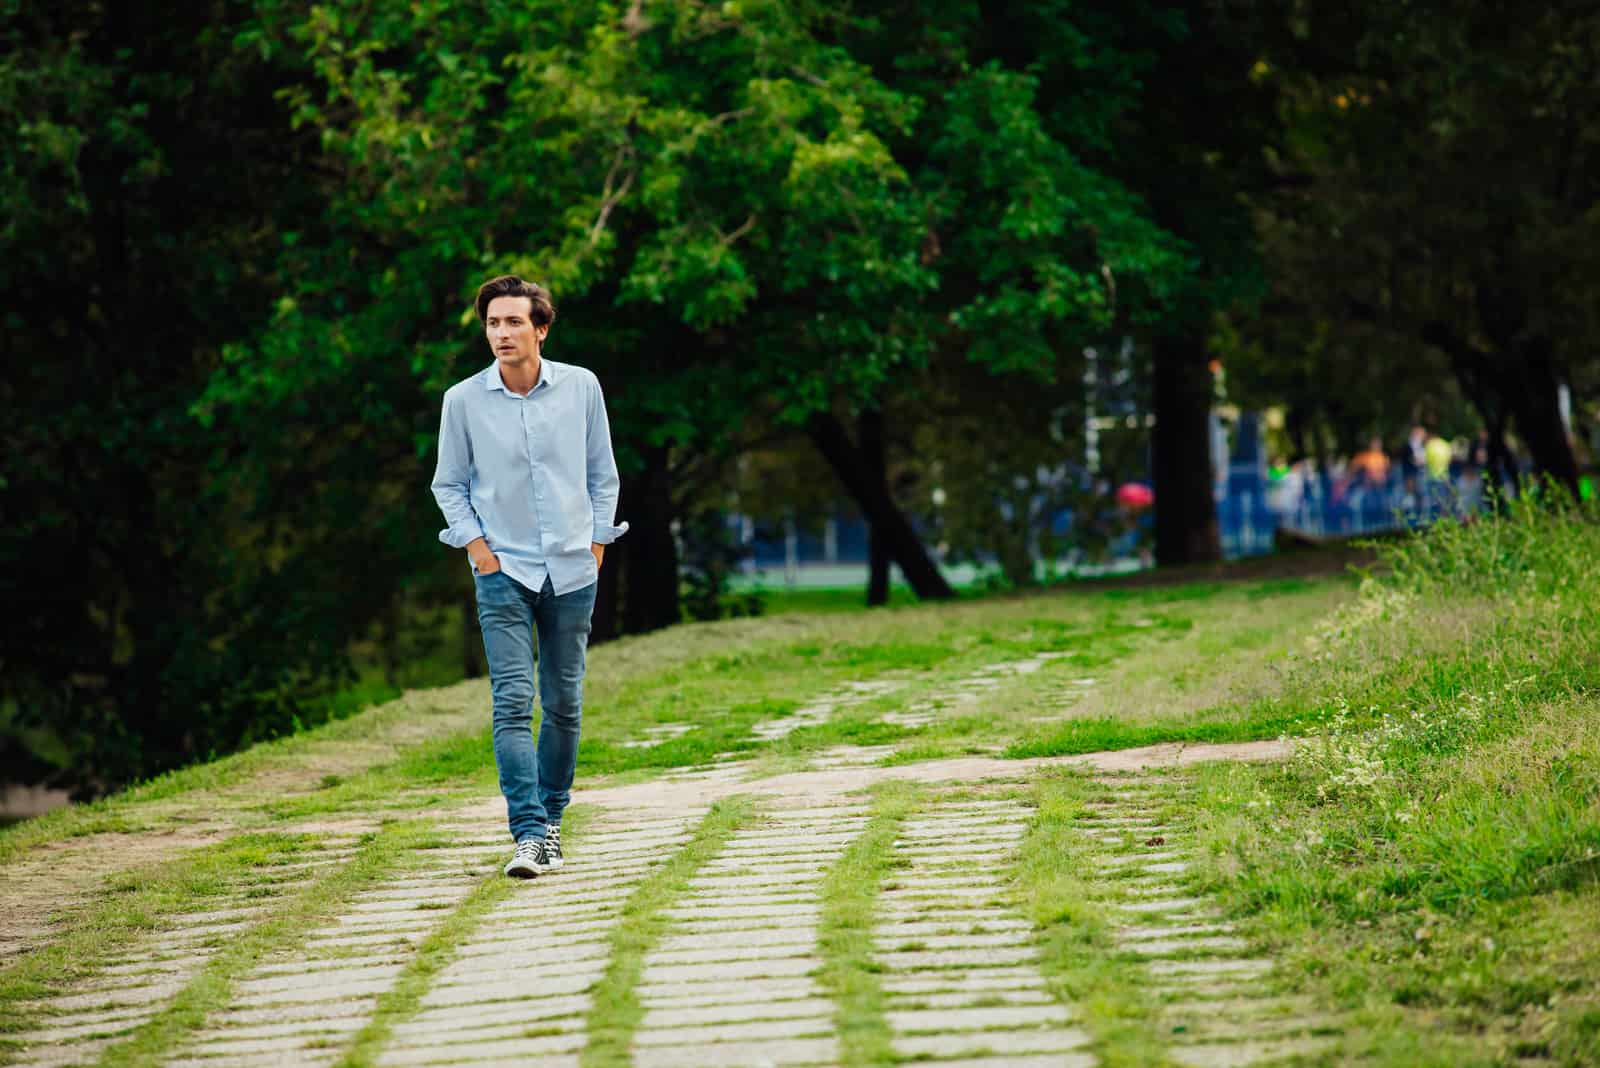 a man in a blue shirt and jeans walks through the park